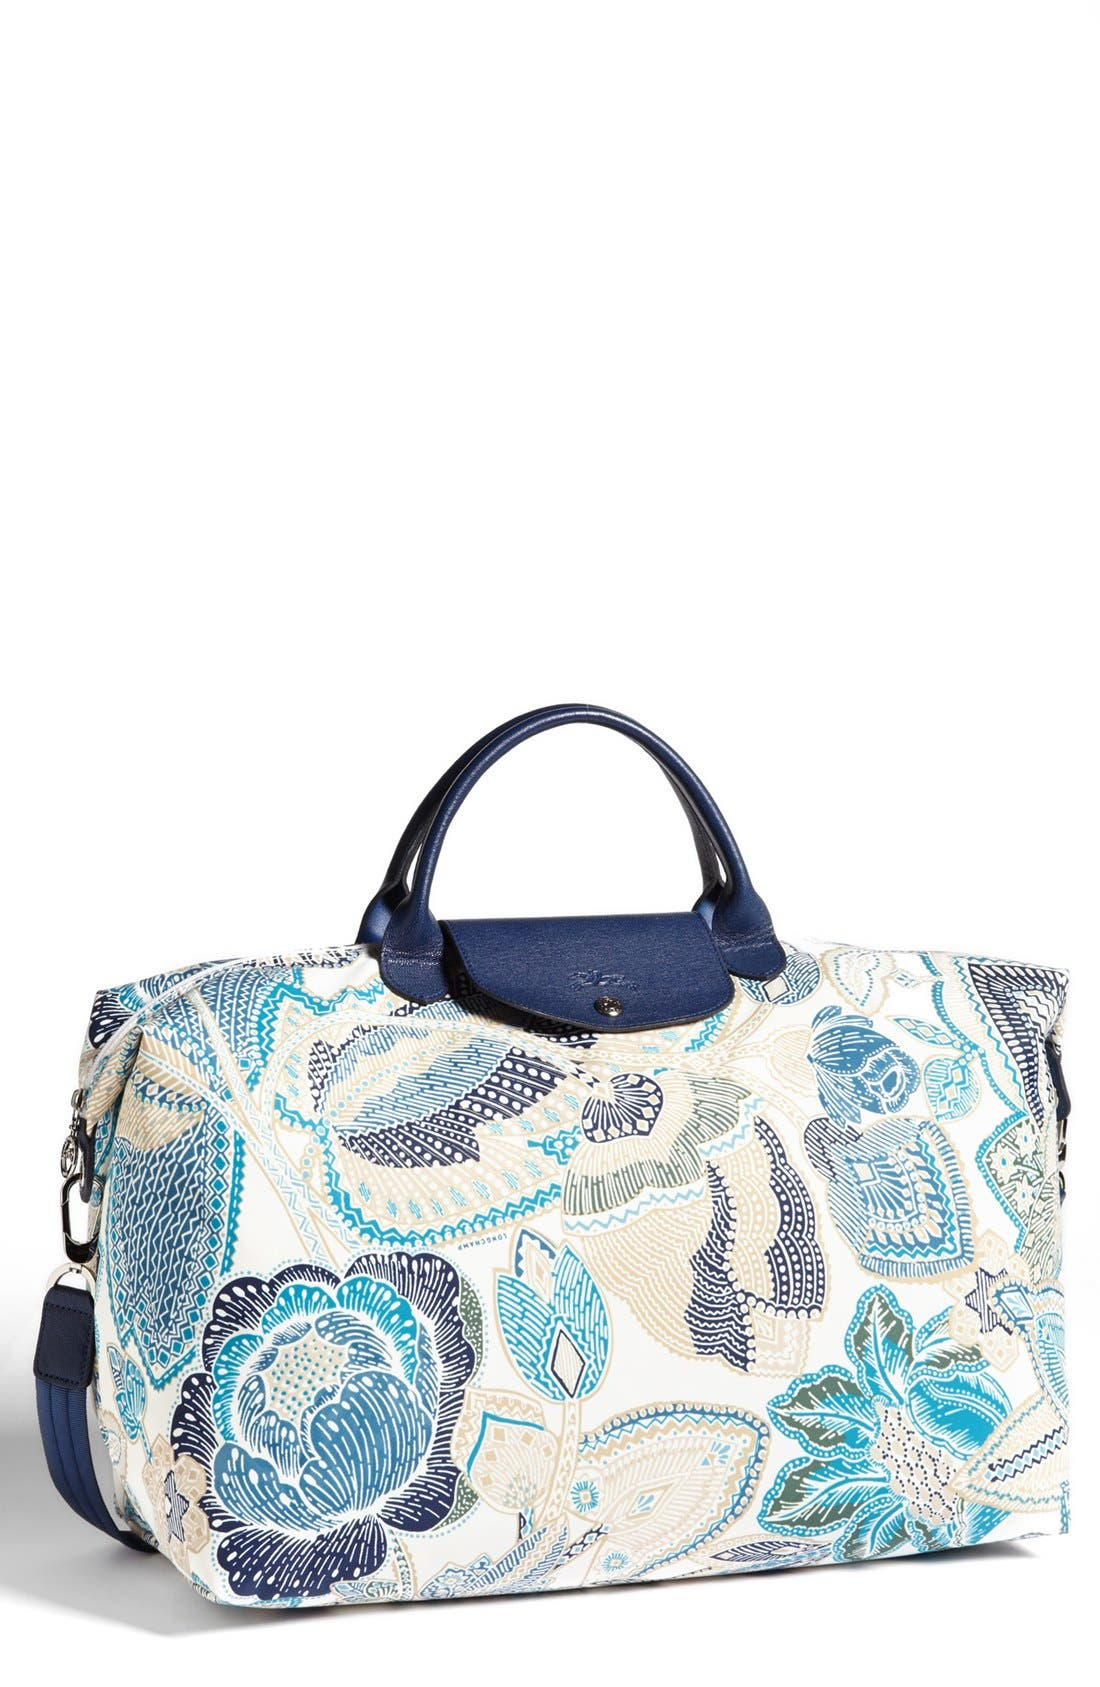 'Fleurs de Ravello' Travel Bag,                             Main thumbnail 1, color,                             Indigo